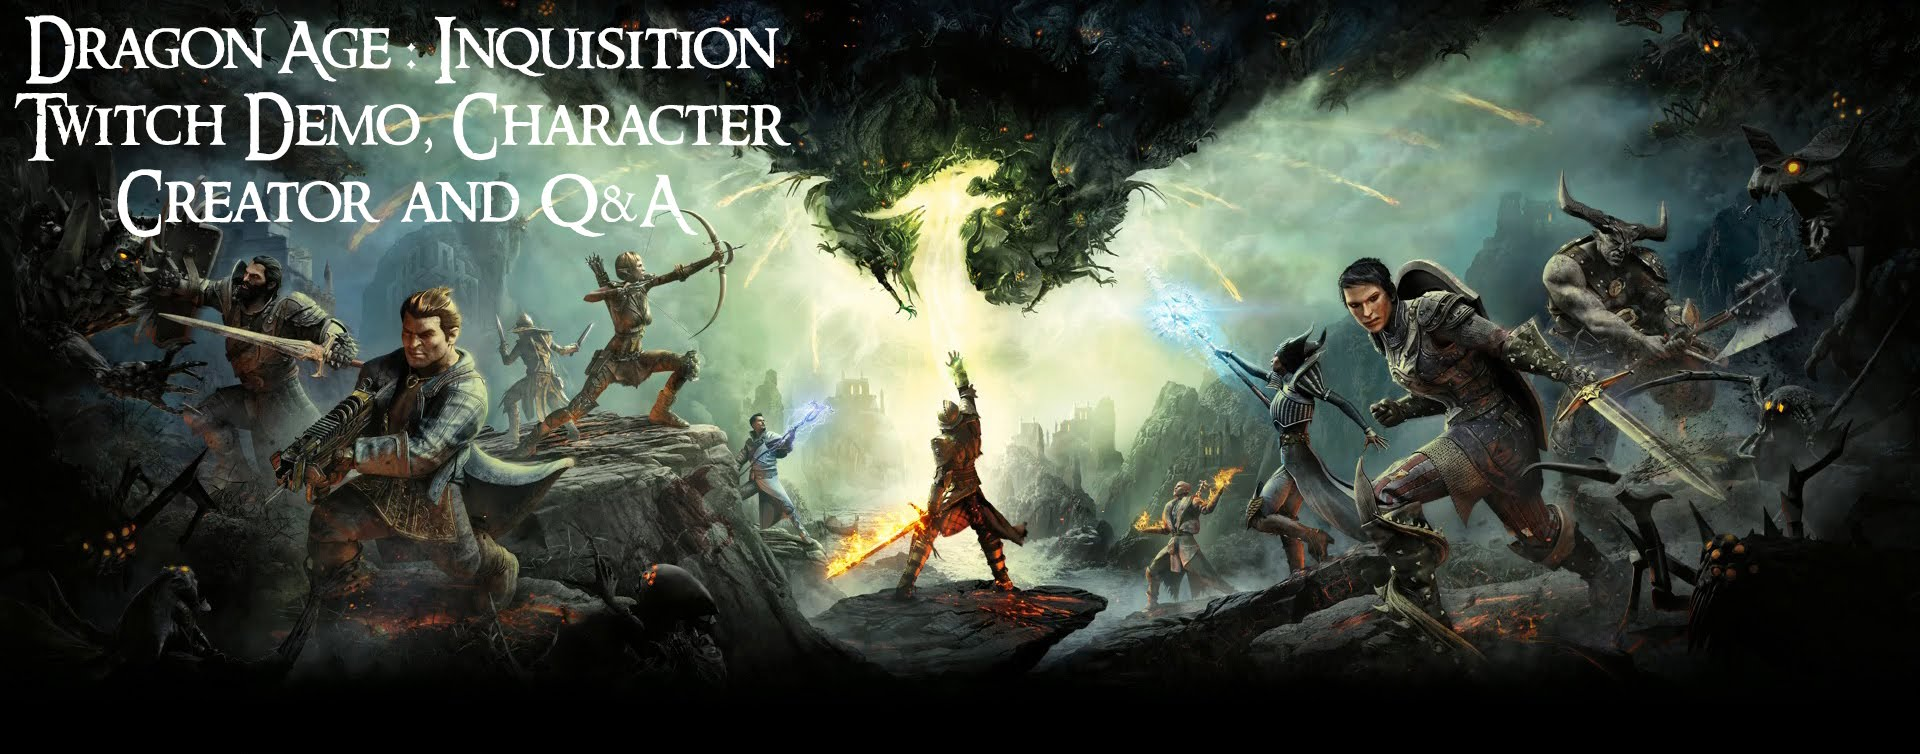 DRAGON AGE: INQUISITION – 50 Minuten Charaktererstellung und Gameplay